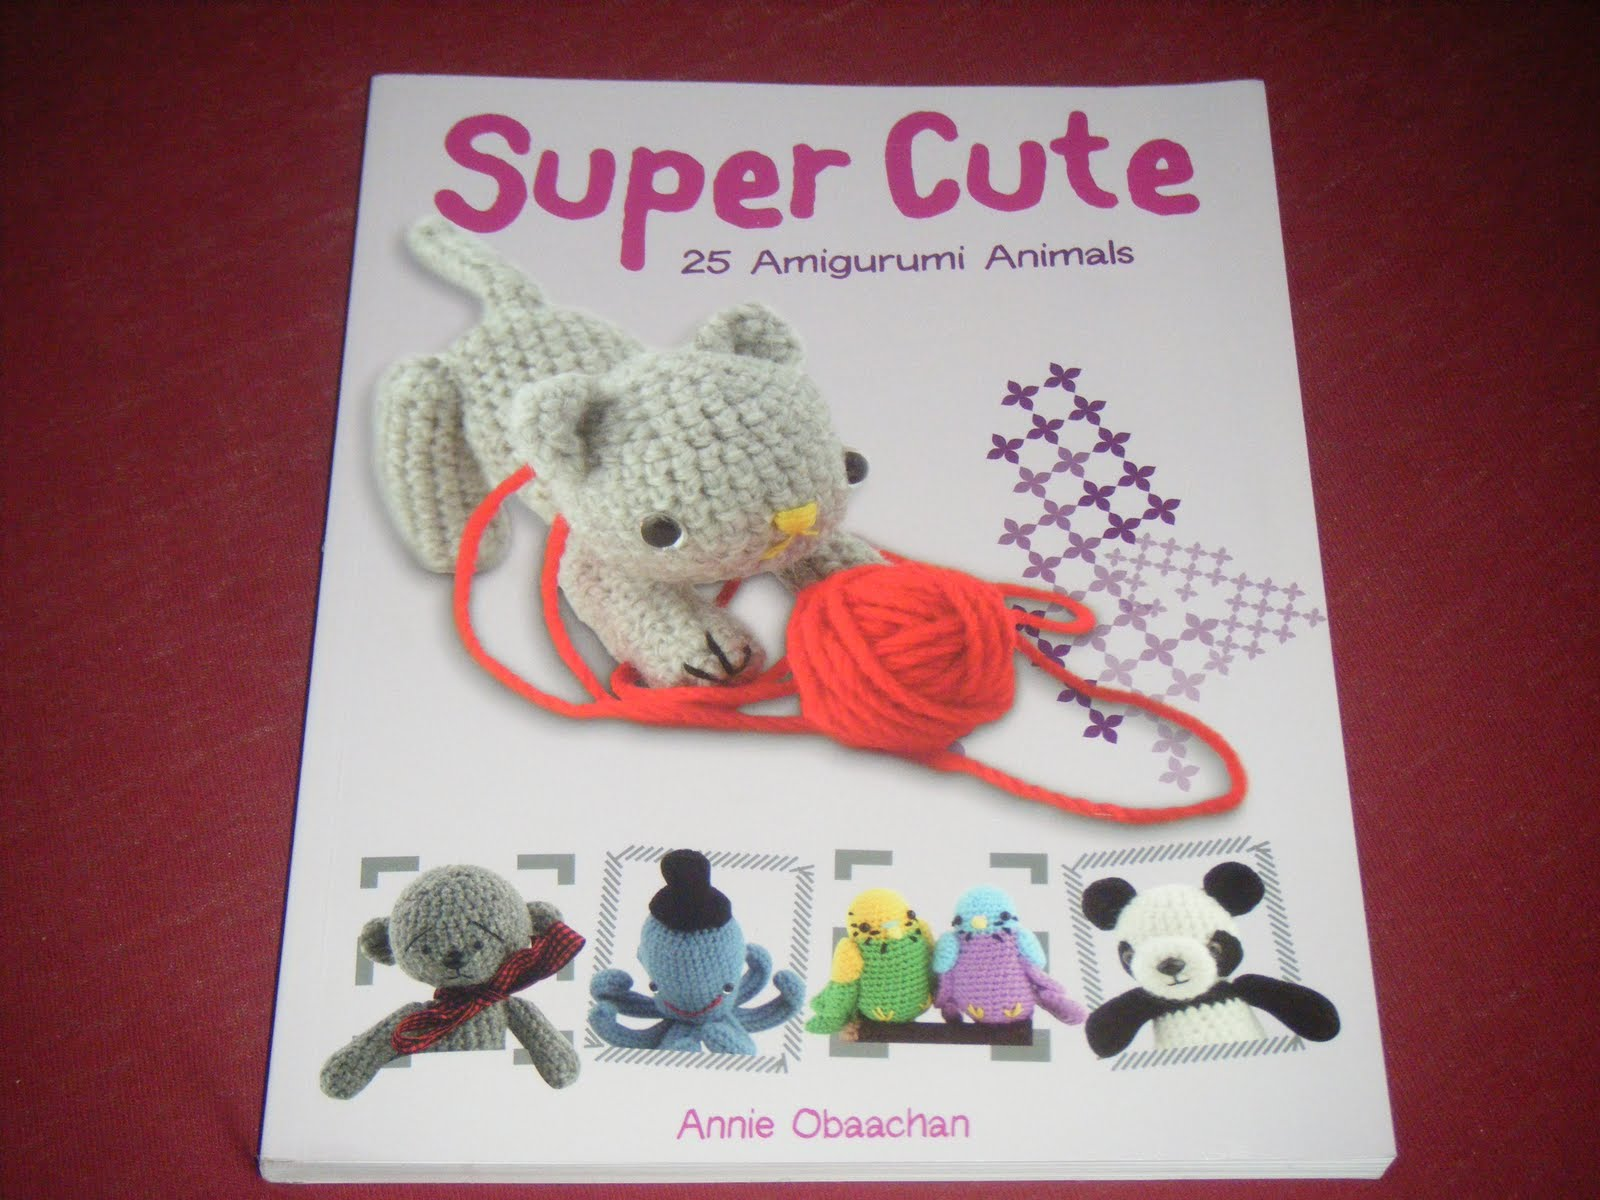 Super Cute: 25 Amigurumi Animals to Make, Obaachan, Annie, Used; Very Good Book